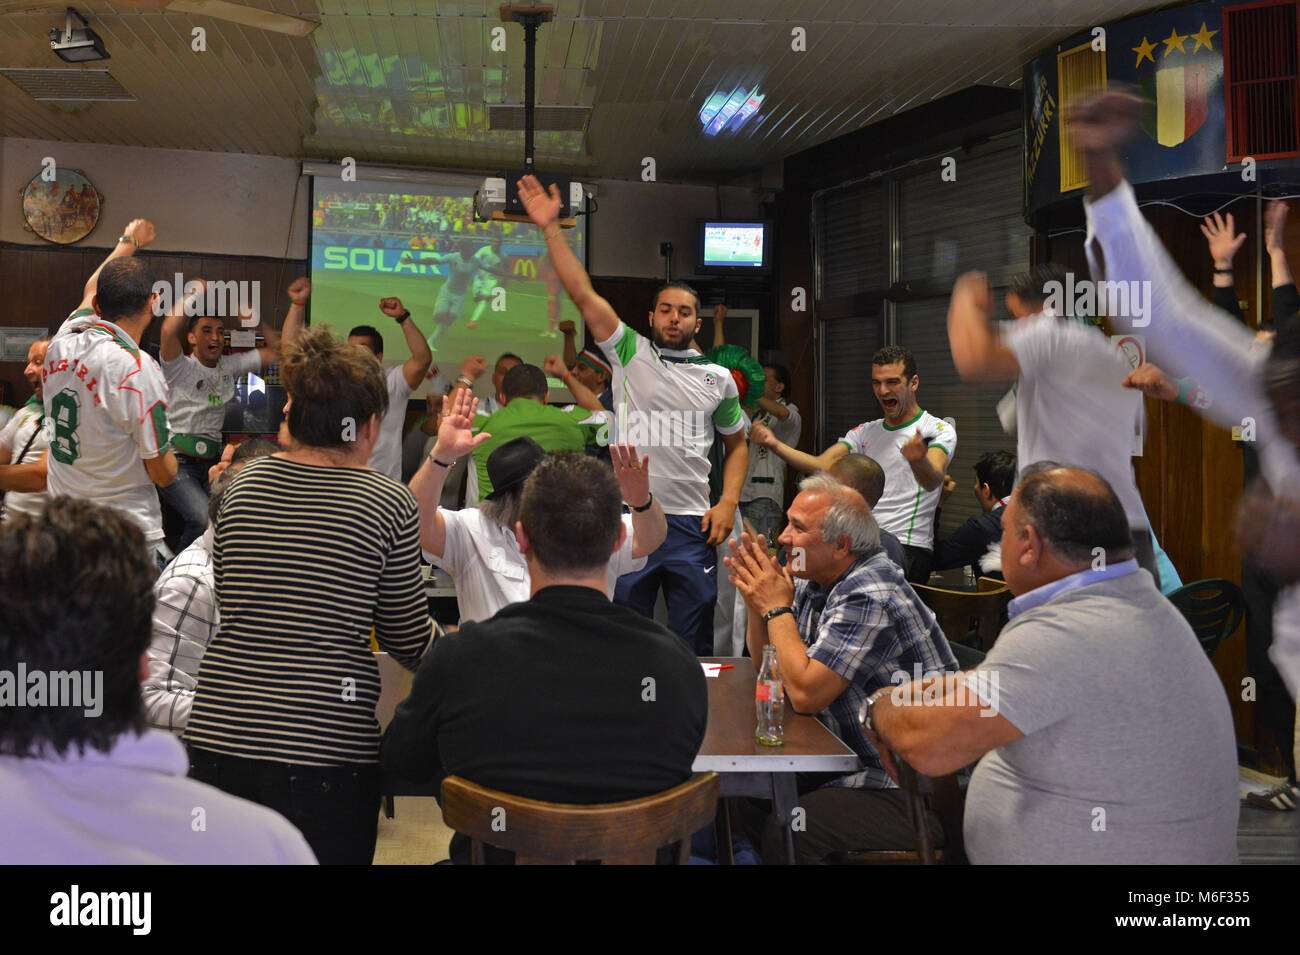 Bruxelles. Algerian supporters celebrate during world football championship, Molenbeek. Belgium. - Stock Image